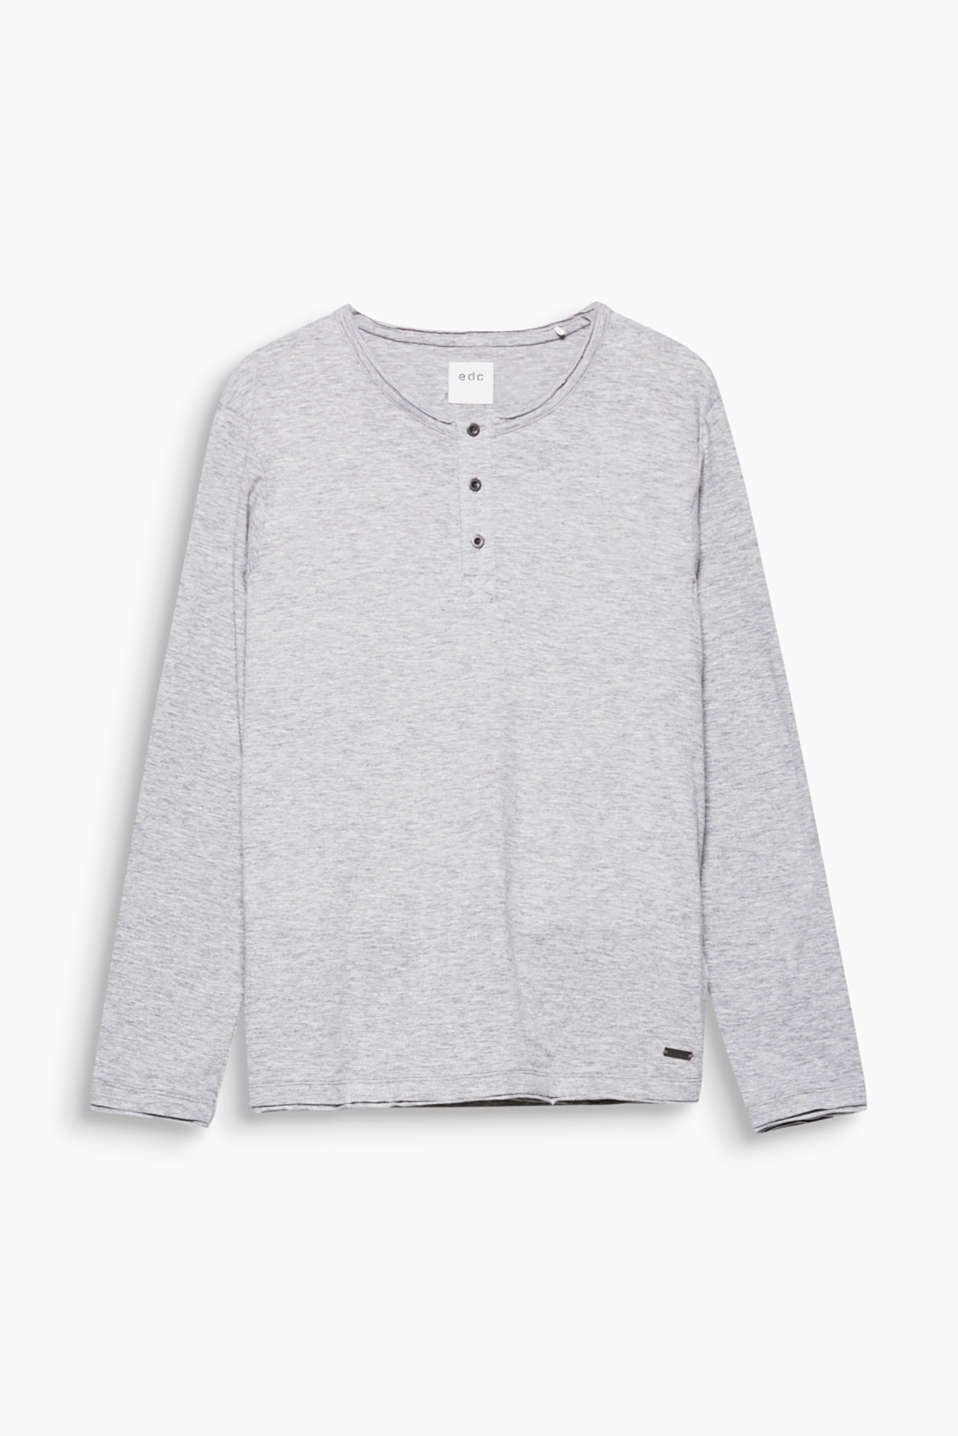 The slub texture gives this long sleeve Henley top in pure cotton its super cool look.